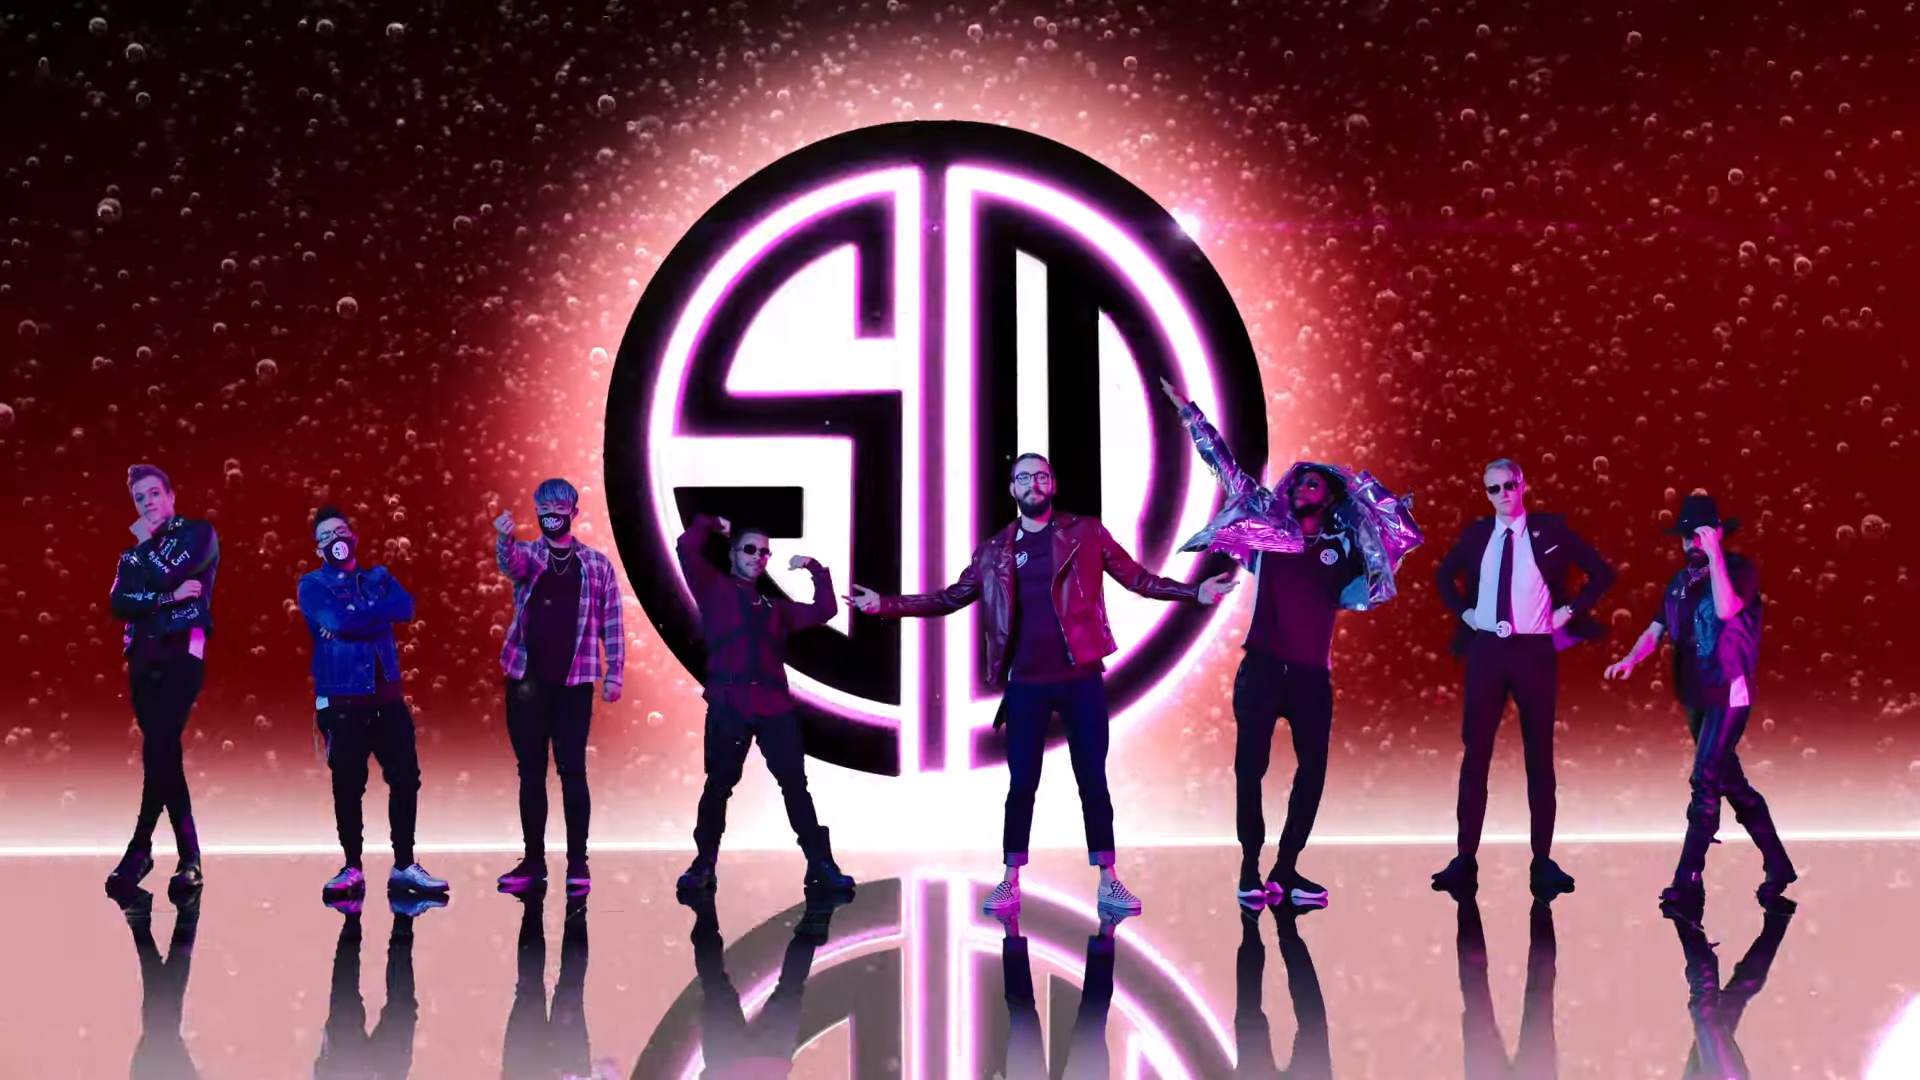 Newest TSM wallpaper to add to our collection TeamSolomid 1920x1080